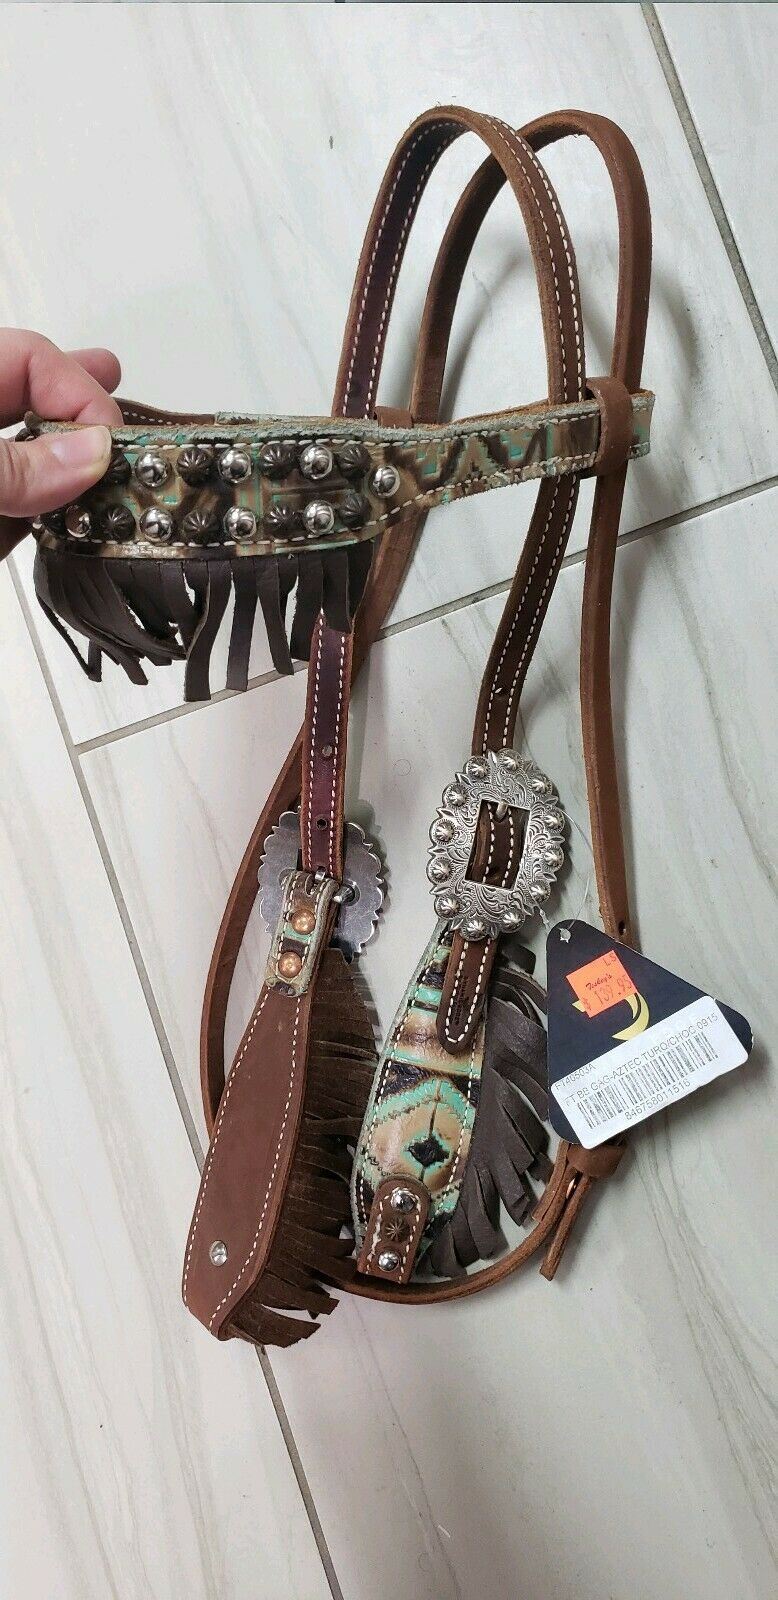 Ftuttion Taylor Dynamic Edge Headsttutti Leather Western Fringe cavallo Tack